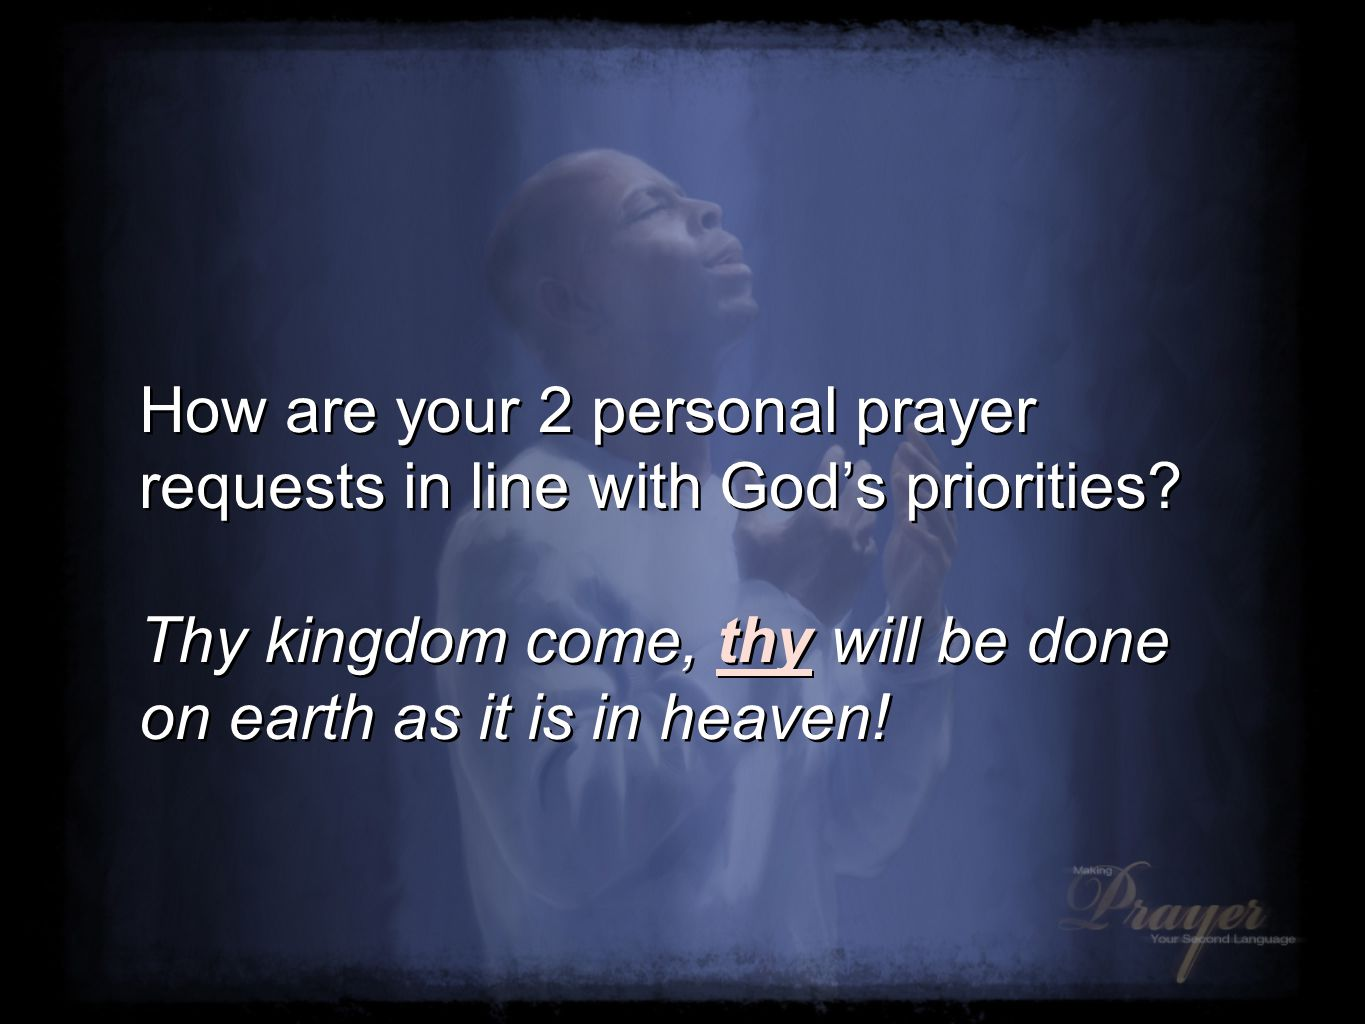 How are your 2 personal prayer requests in line with God's priorities.